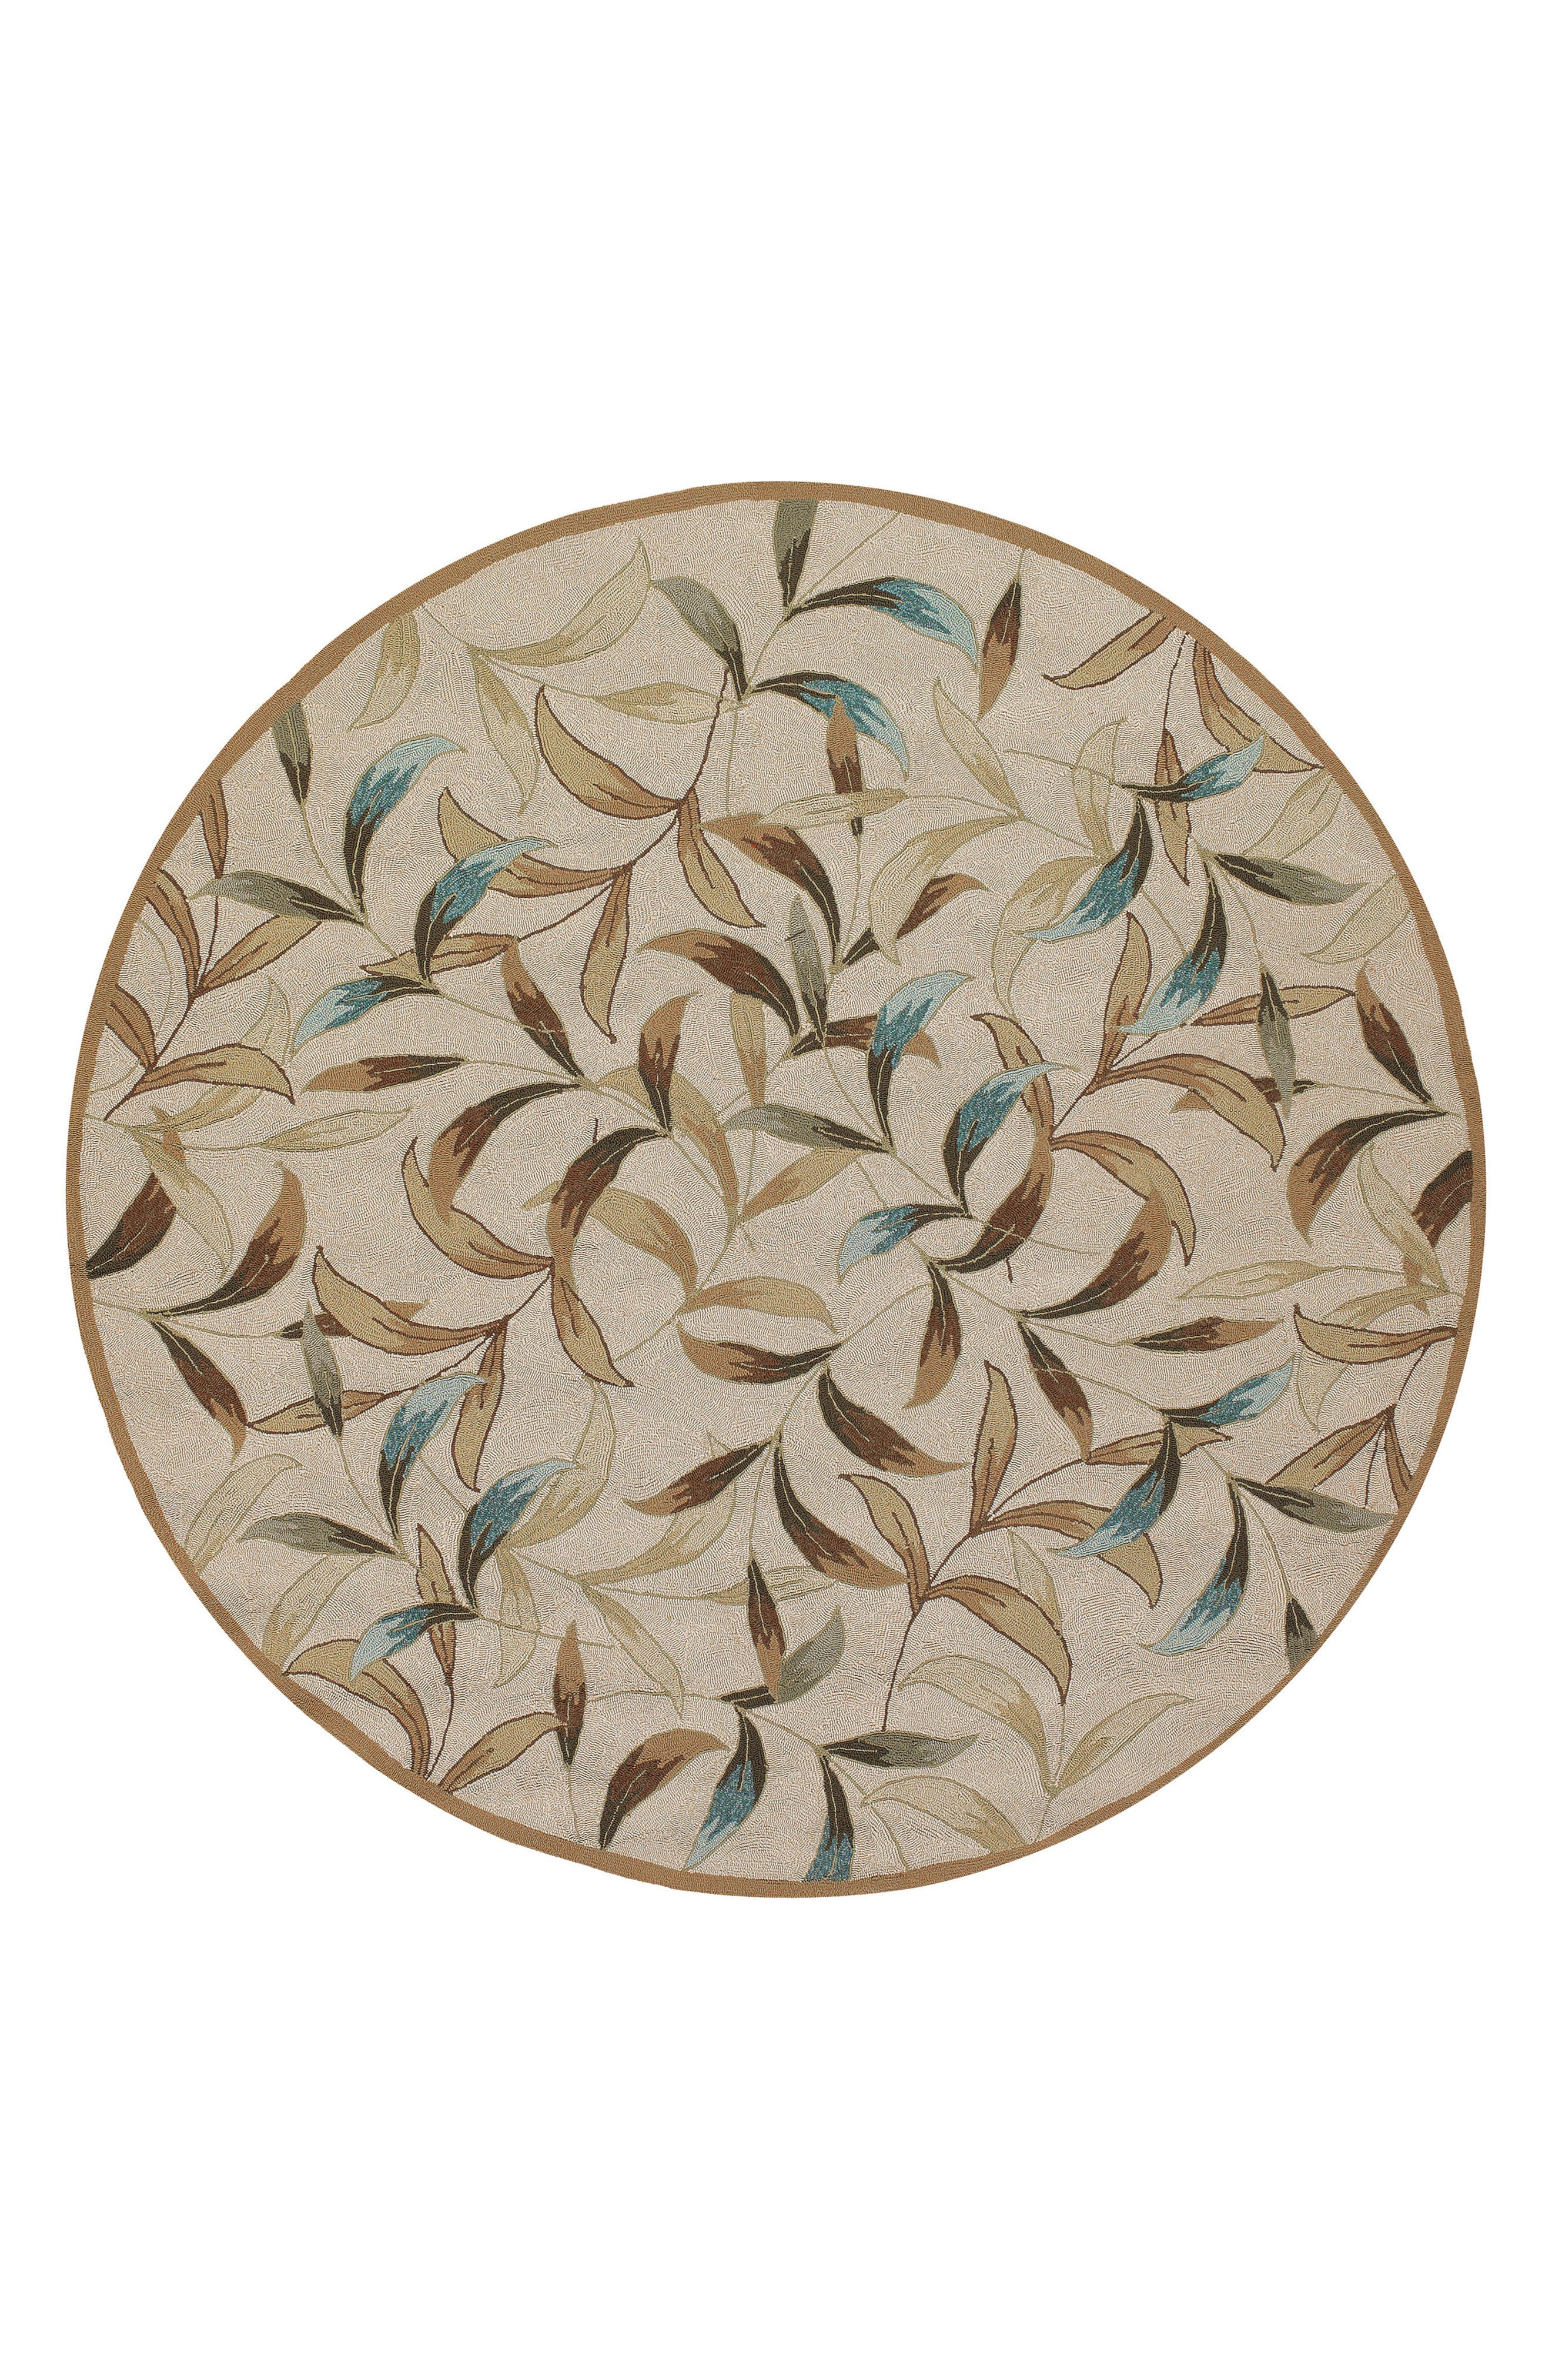 Spring Vista Indoor/Outdoor Round Rug,                             Main thumbnail 1, color,                             250